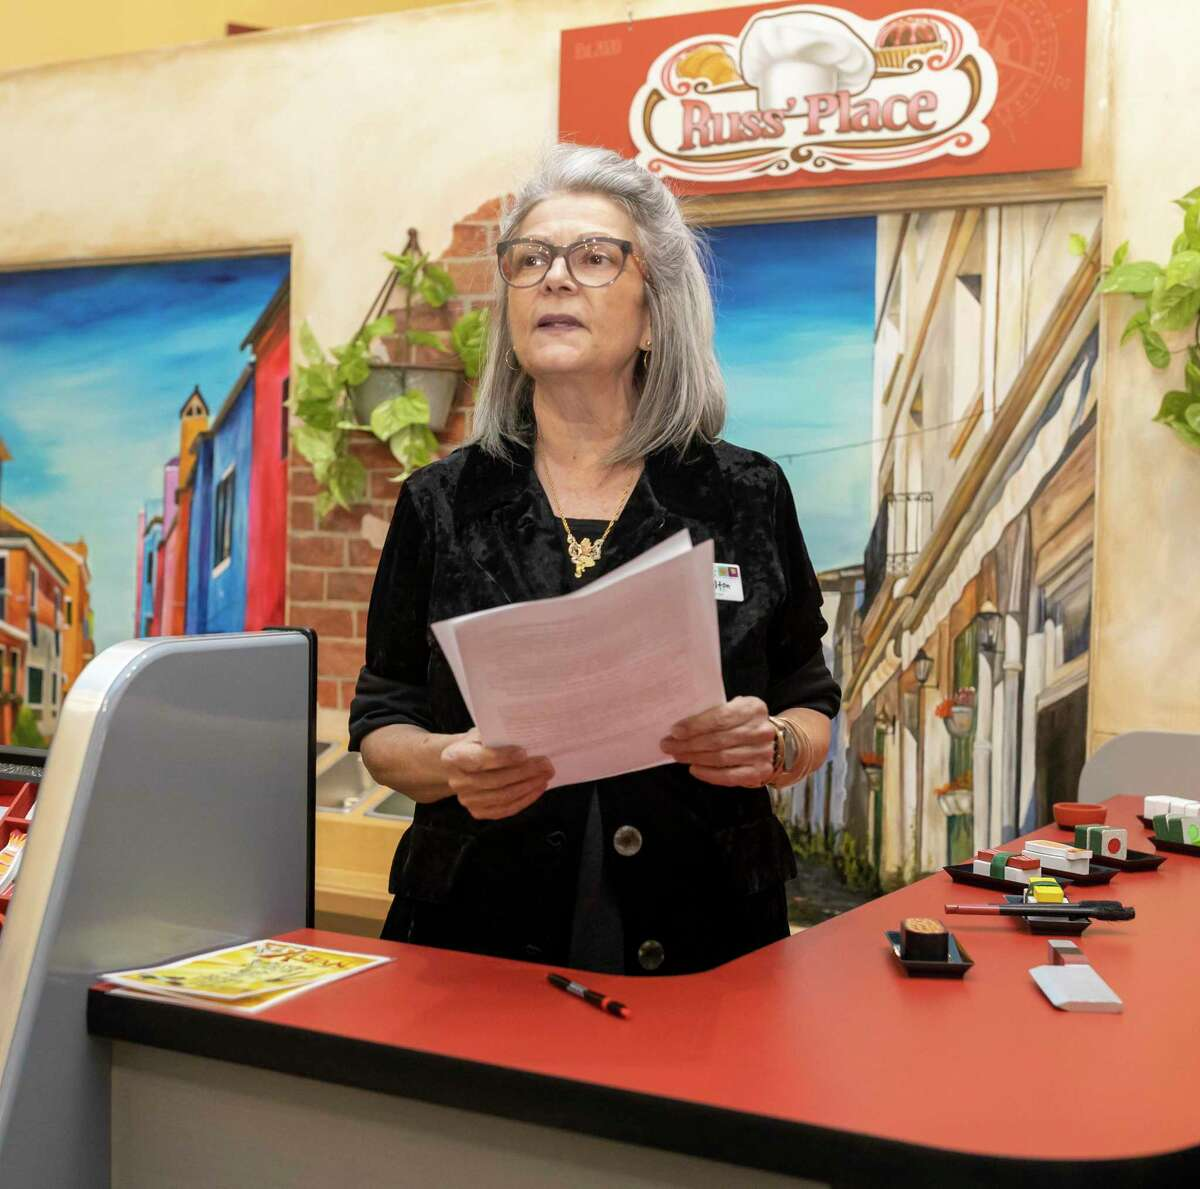 Executive Director Angela Colton, unveils a new permanent exhibit at the Children's Museum in the Woodlands, on Saturday, Jan. 25, 2020. The exhibit called Russ' Place will feature foods from all around the world.